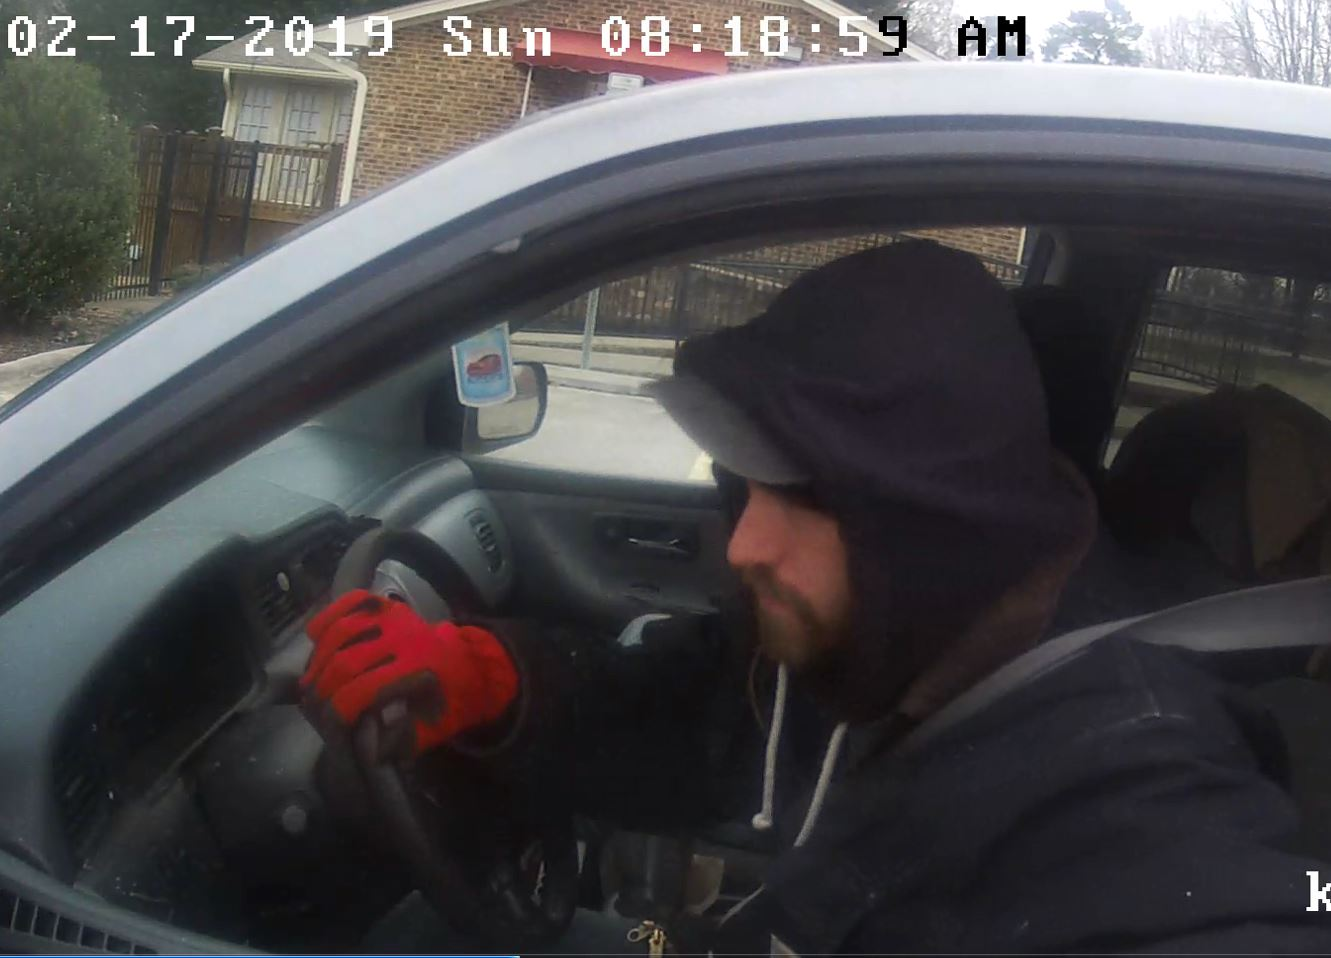 GCSO is requesting the public's assistance in identifying